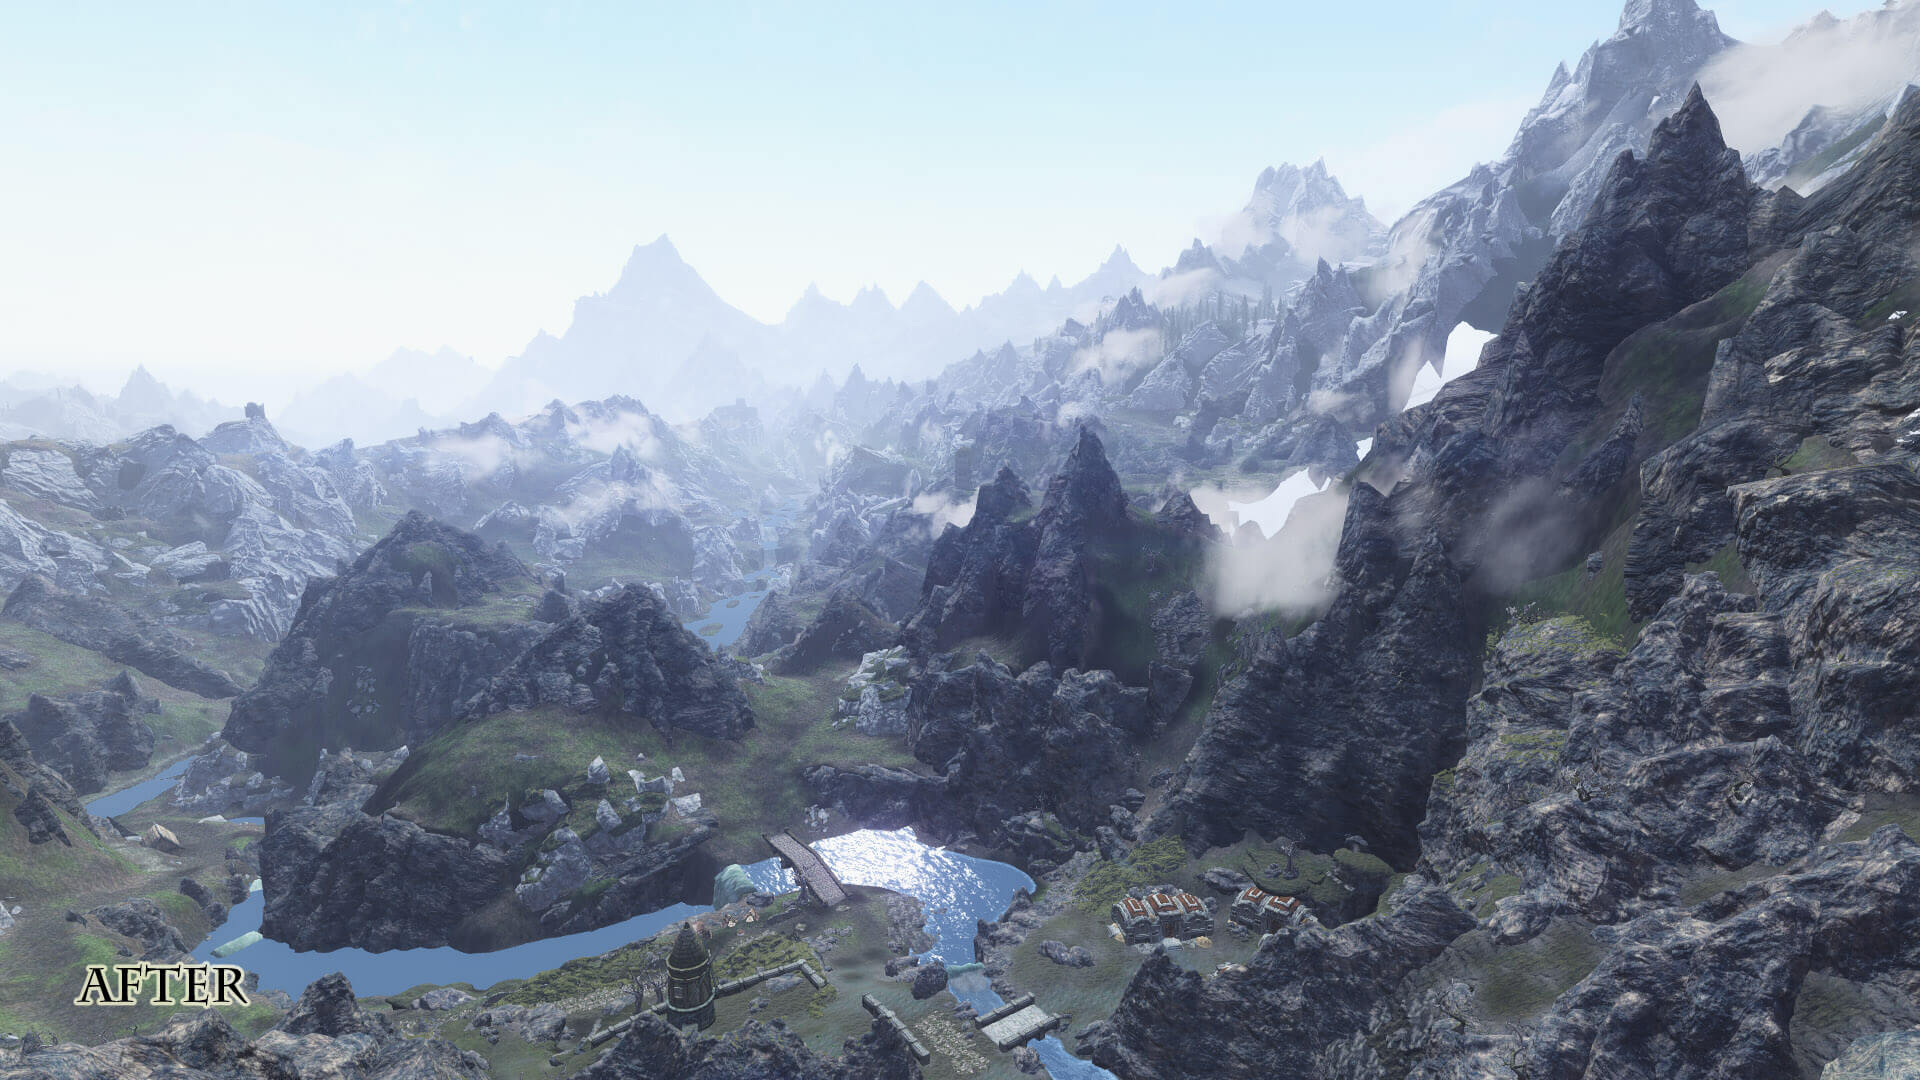 Skyrim mods replace the LOD blurry textures with 2K high quality